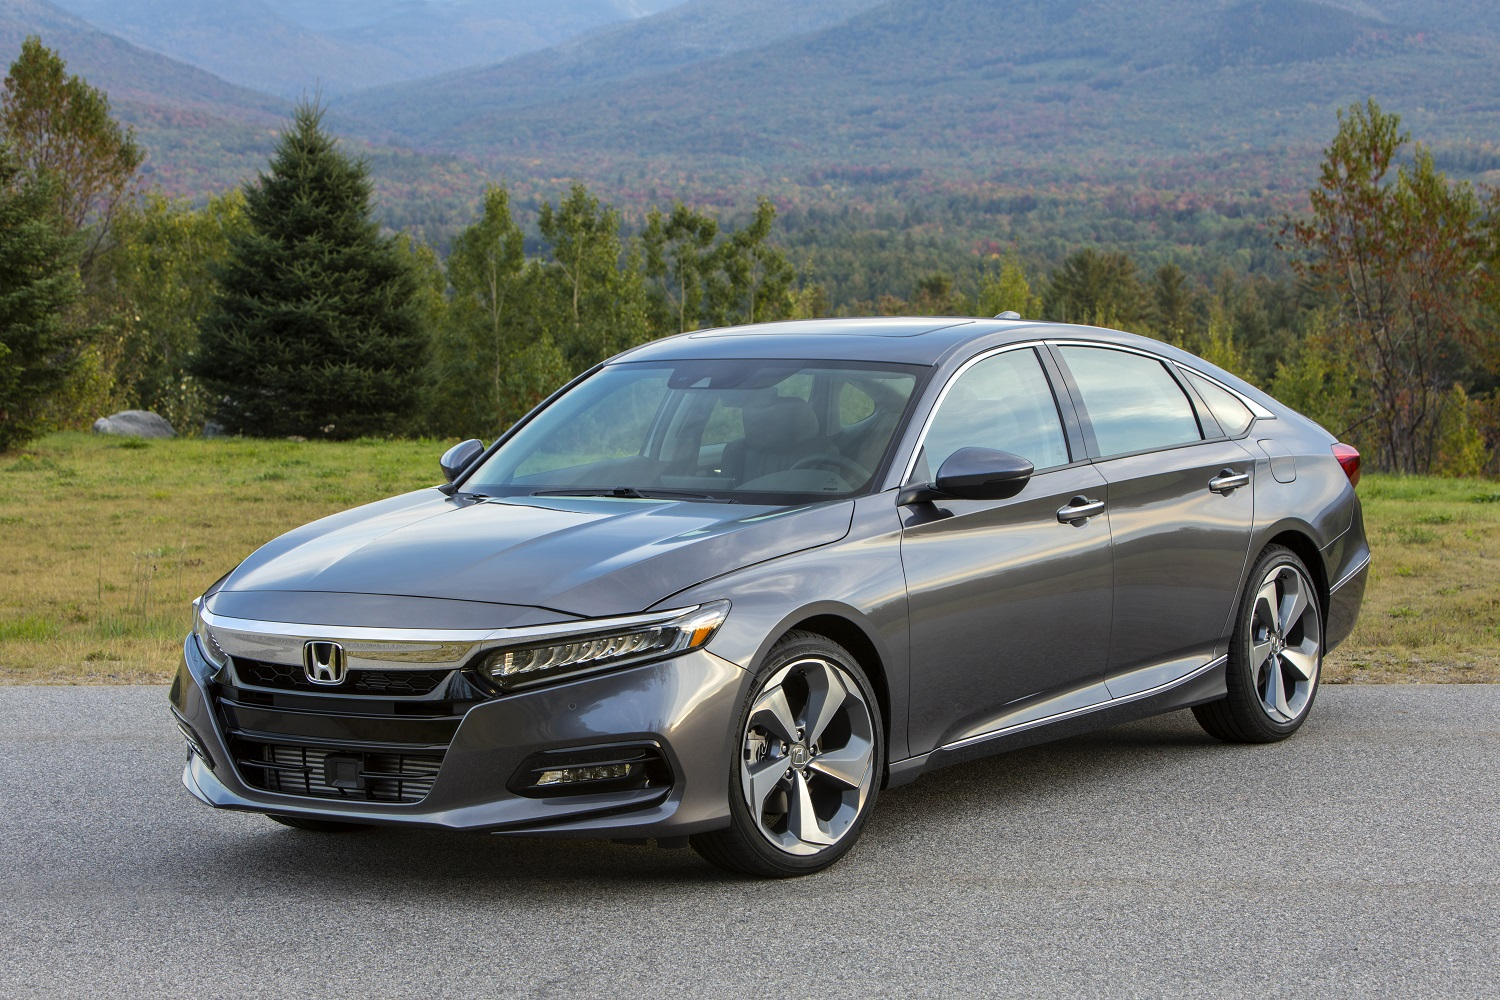 2018 honda accord hits dealerships this month